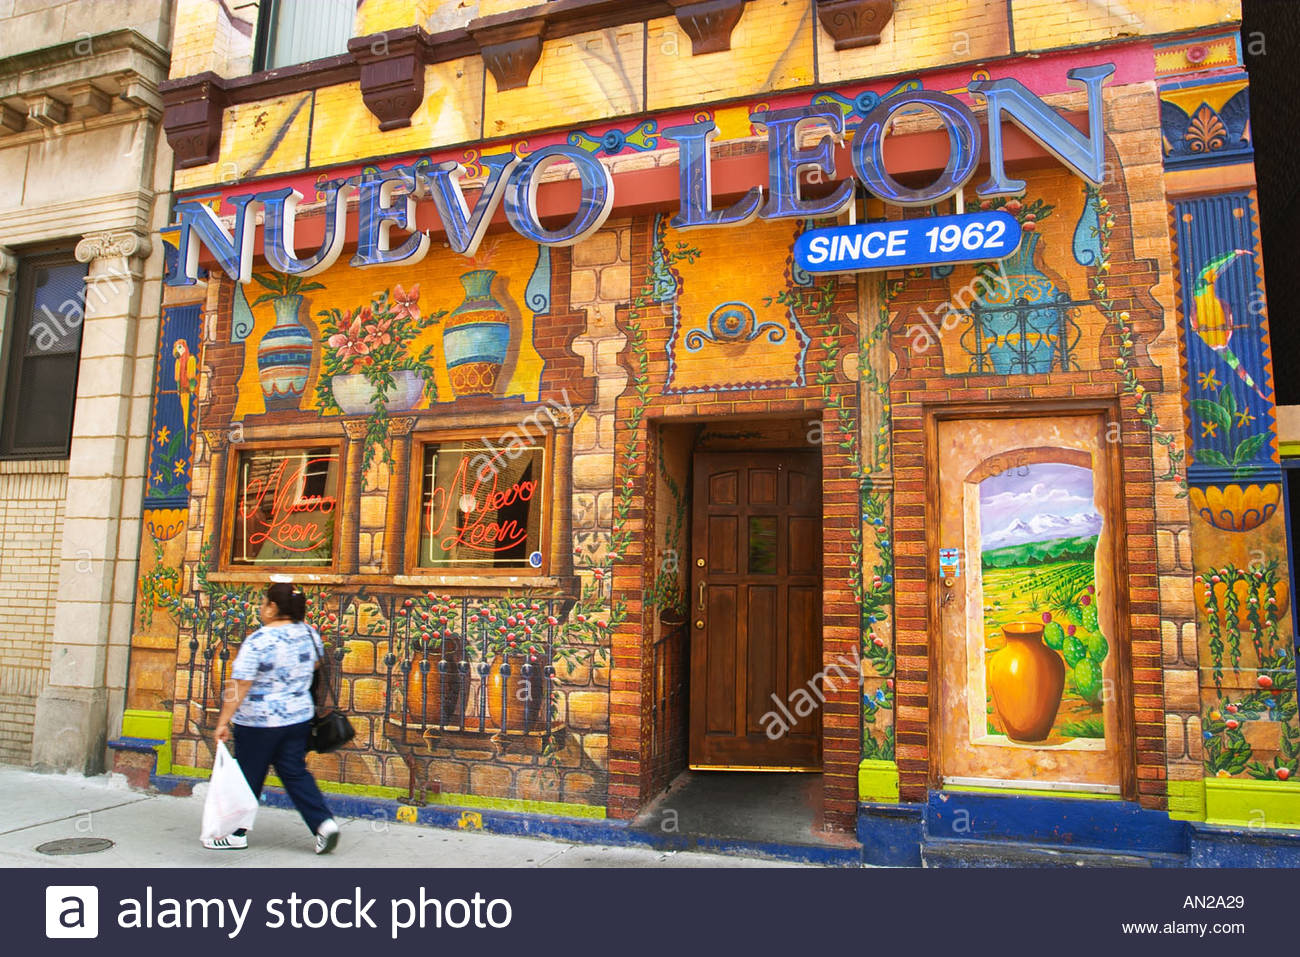 """Street Scene Chicago Illinois Pilsen ethnic Hispanic neighborhood Nuevo Leon restaurant mural on building"" by Kim Karpeles/Alamy Stock Photo. 17 x 11.3 inches. 27 May 2003. Retrieved May 28th, 2019."